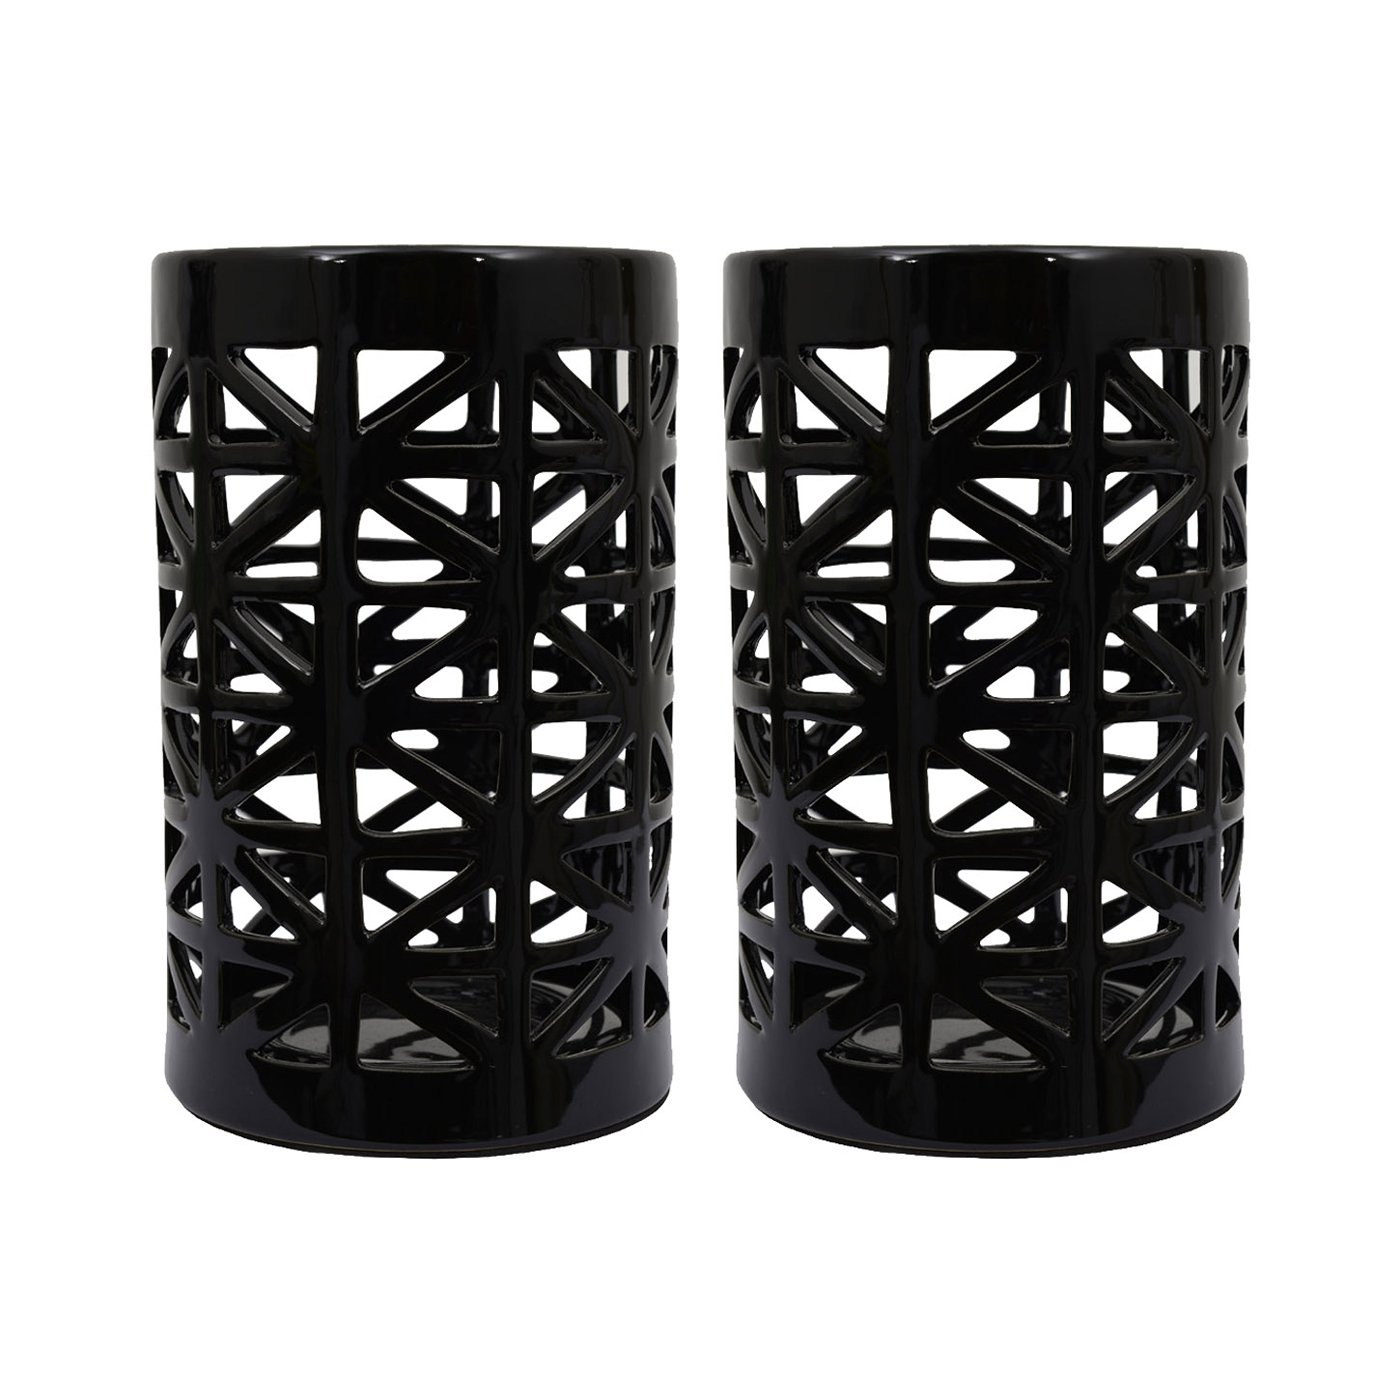 Decor Therapy 2 Candle Black Ceramic Lantern Any Occasion Candle Holder